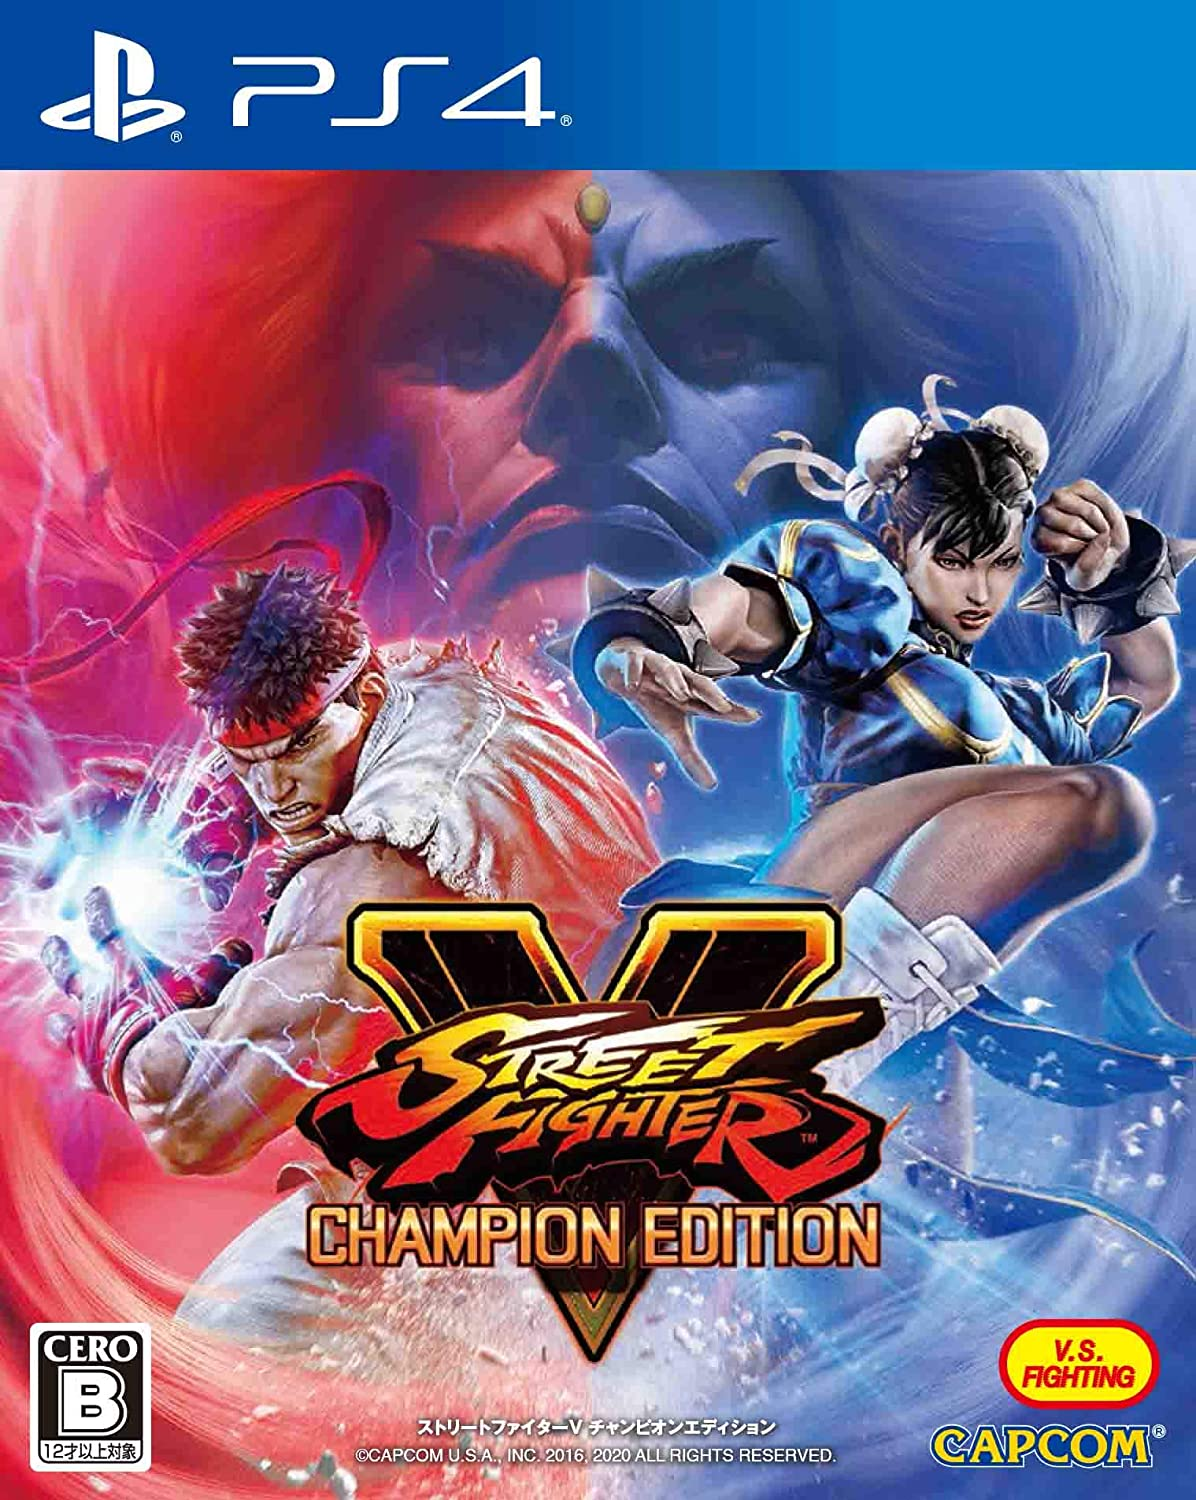 Amazon.co.jp: STREET FIGHTER V CHAMPION EDITION: ゲーム